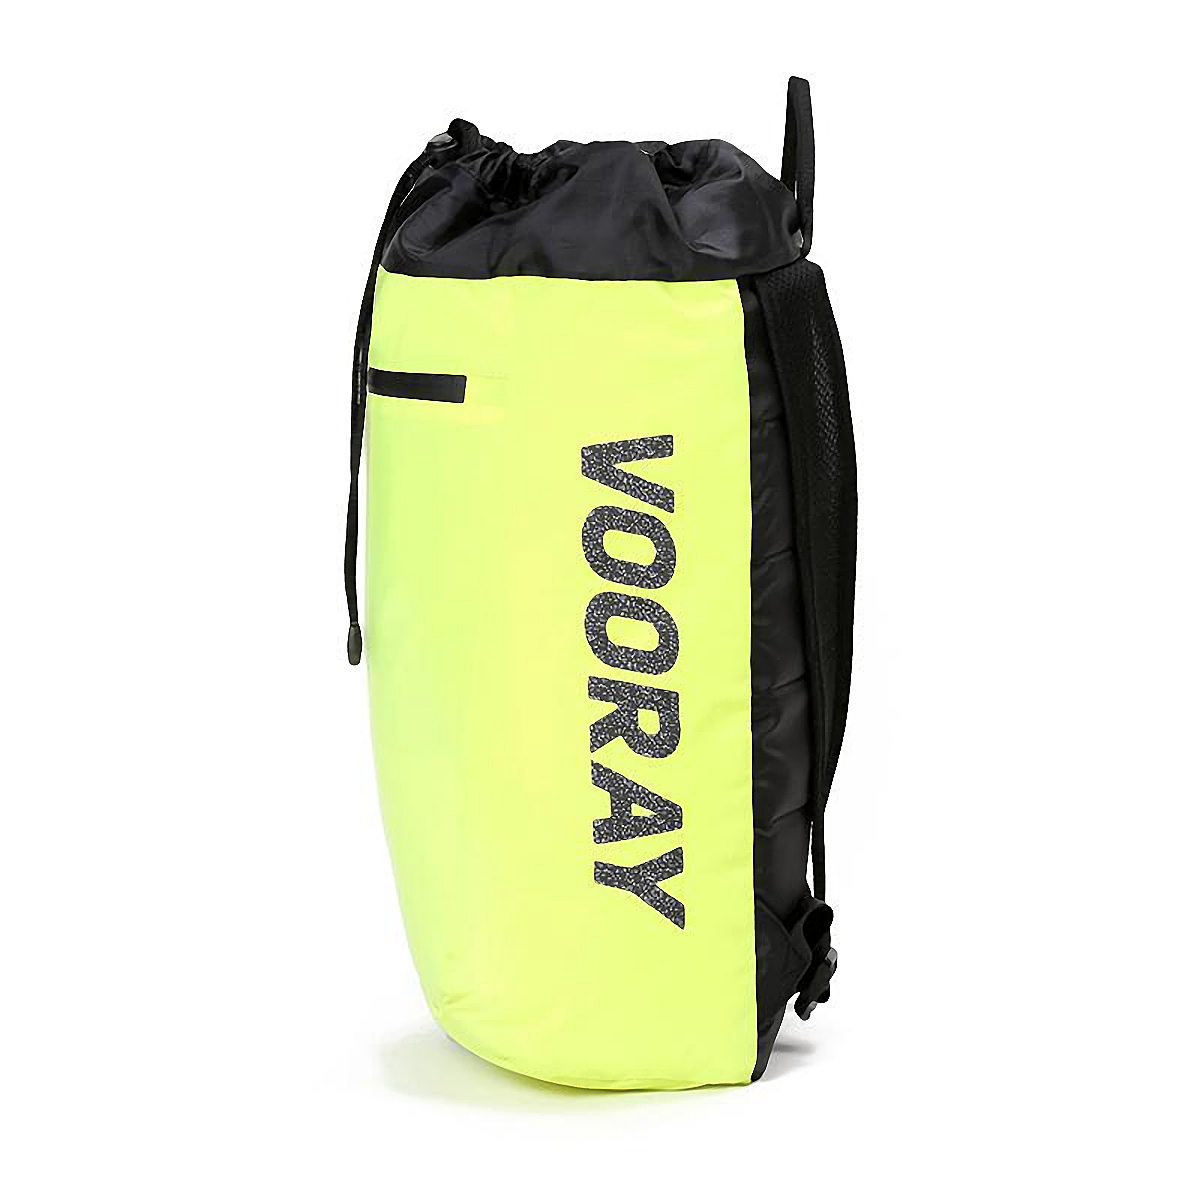 Vooray Stride Cinch Backpack - Color: Neon Yellow - Size: OS, Neon Yellow, large, image 4